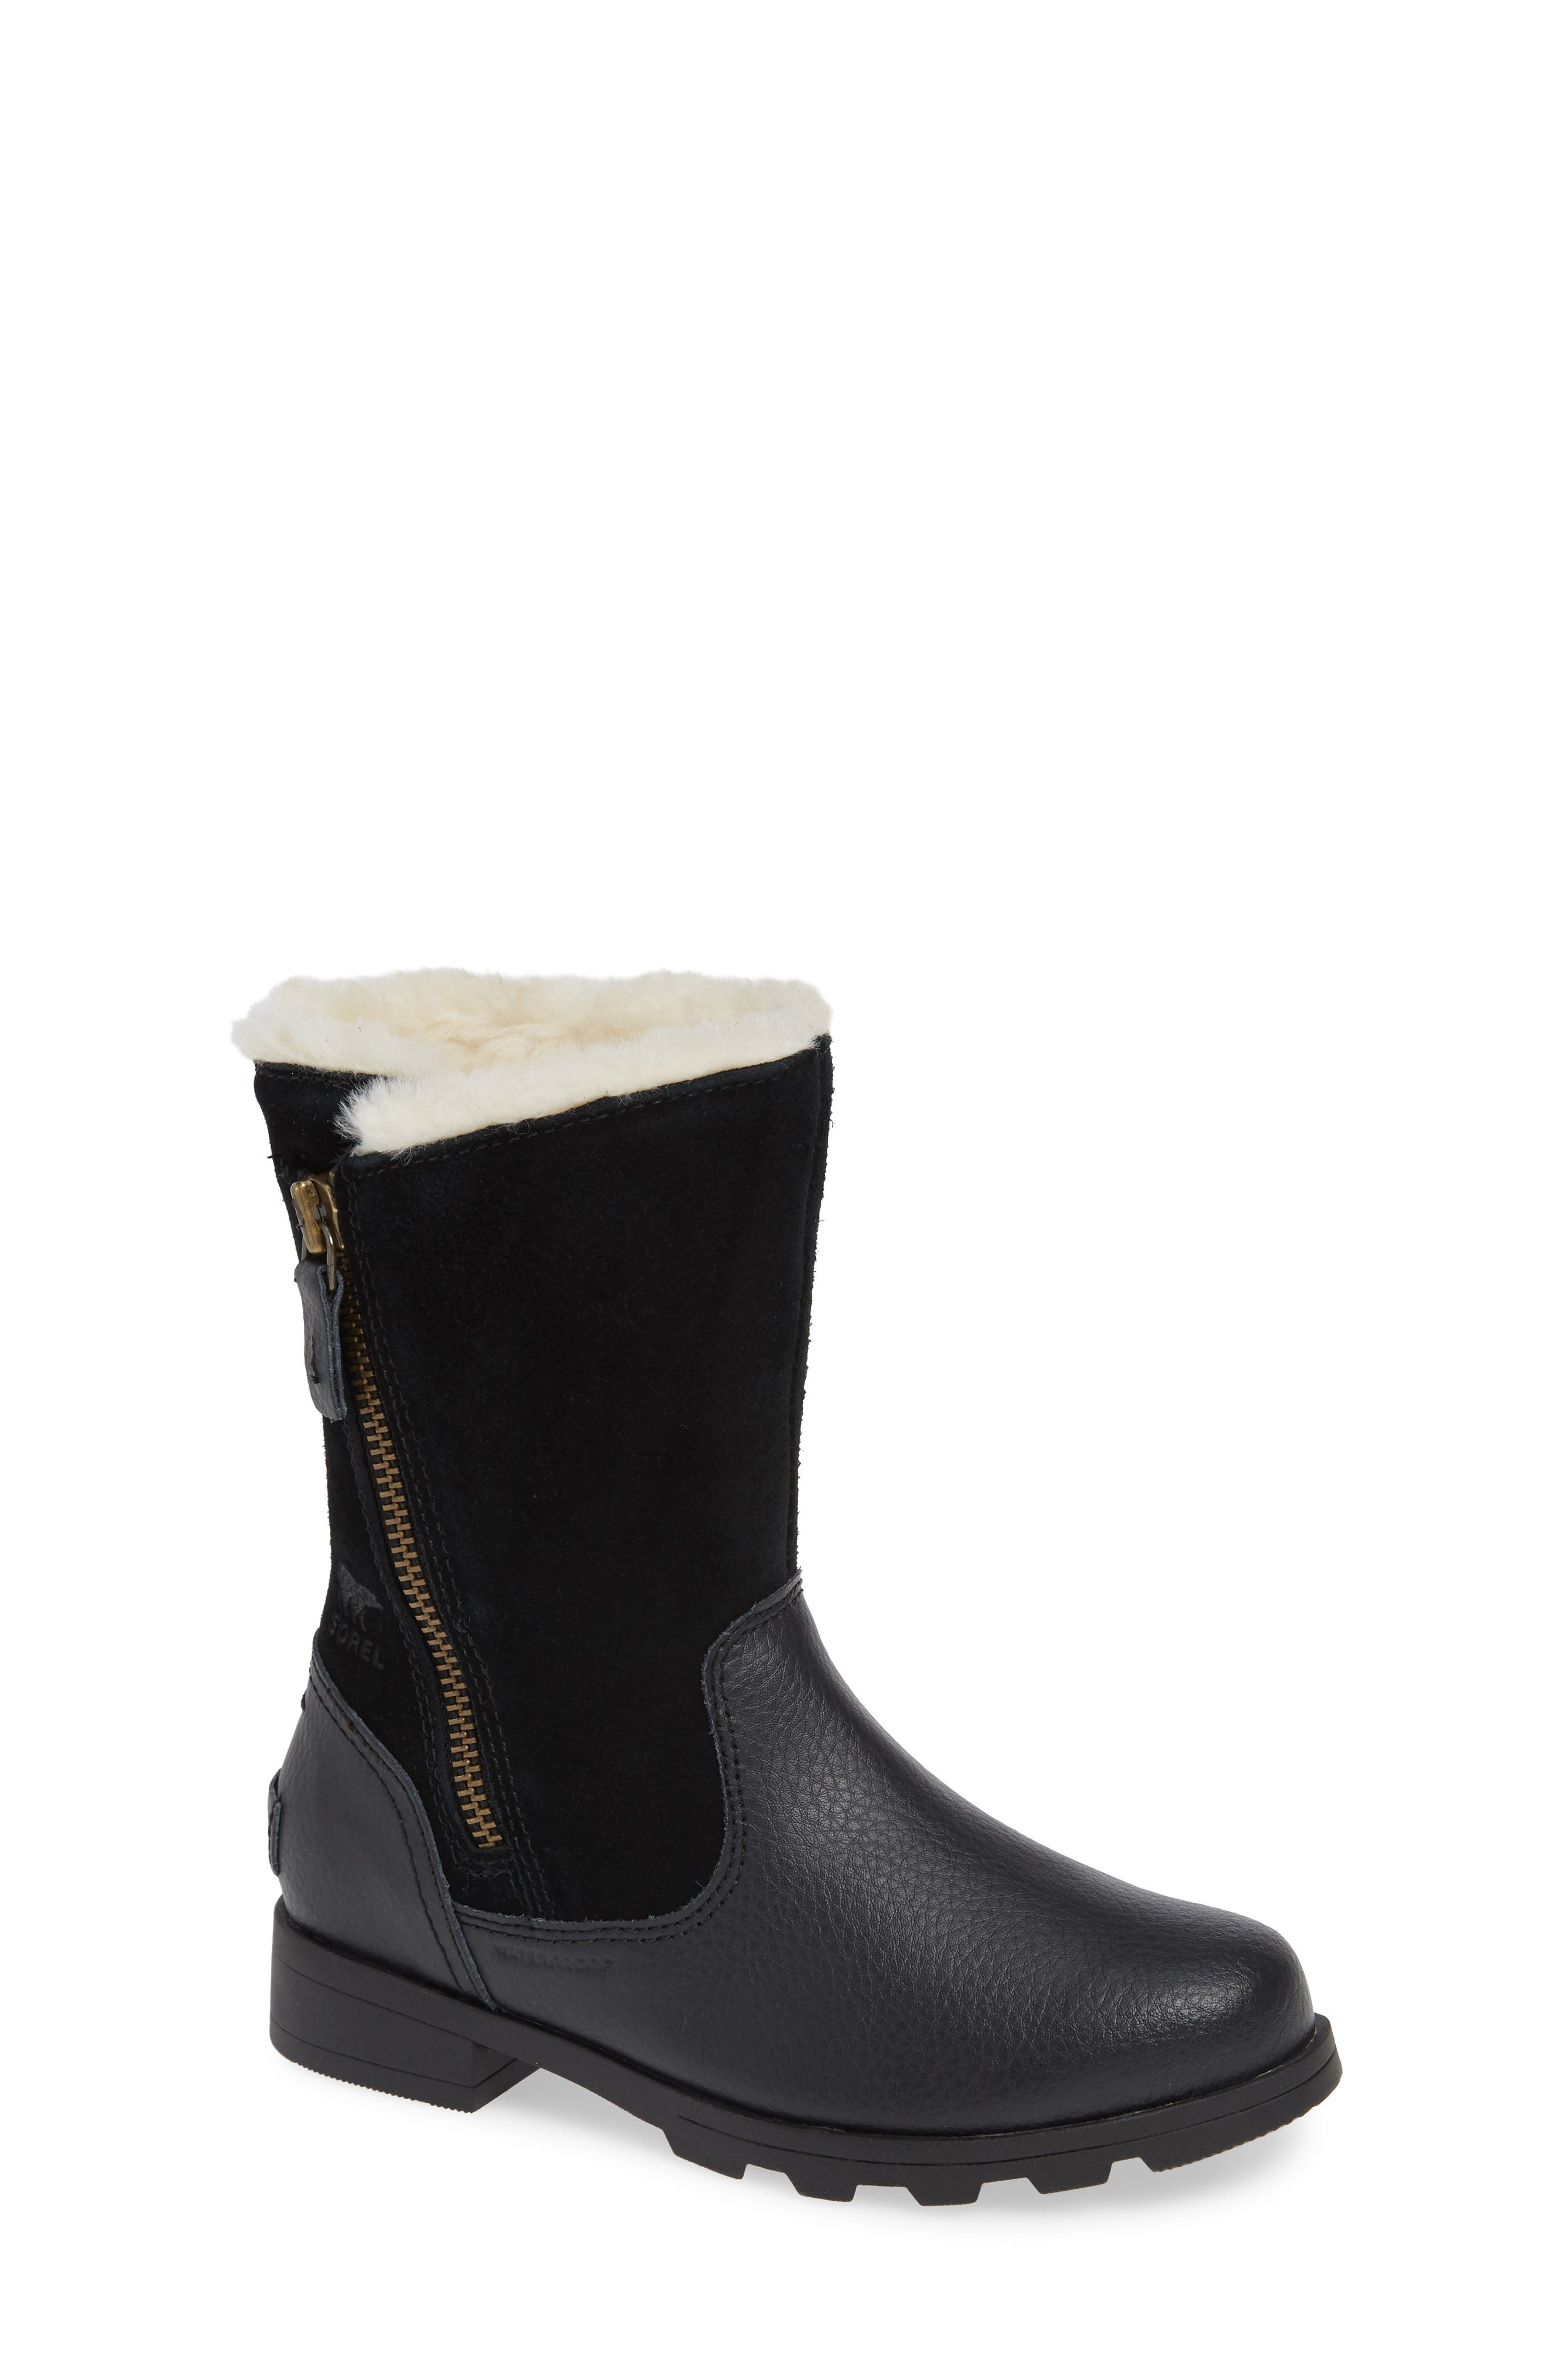 Emelie Waterproof Faux Fur Lined Boot,                             Main thumbnail 1, color,                             010